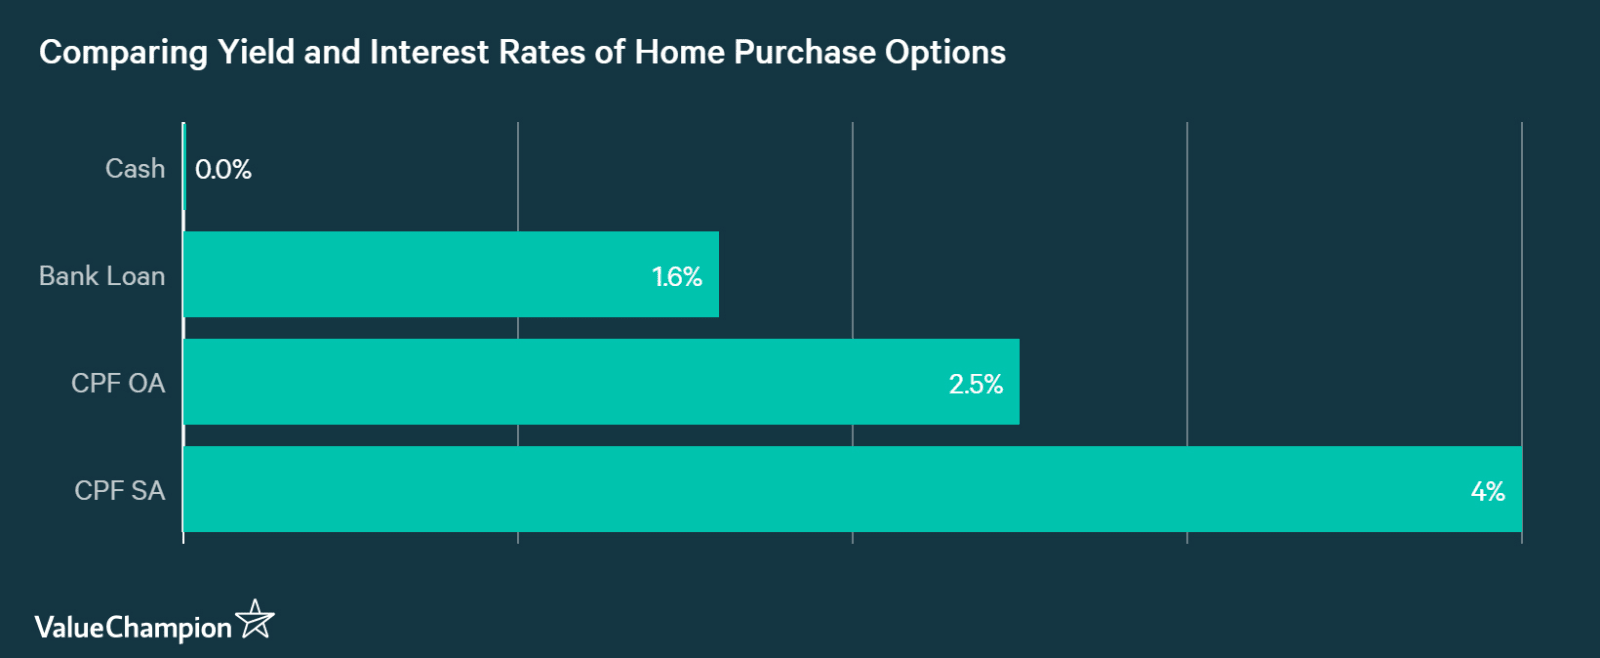 Comparing cost and yields of different financing options for home purchase